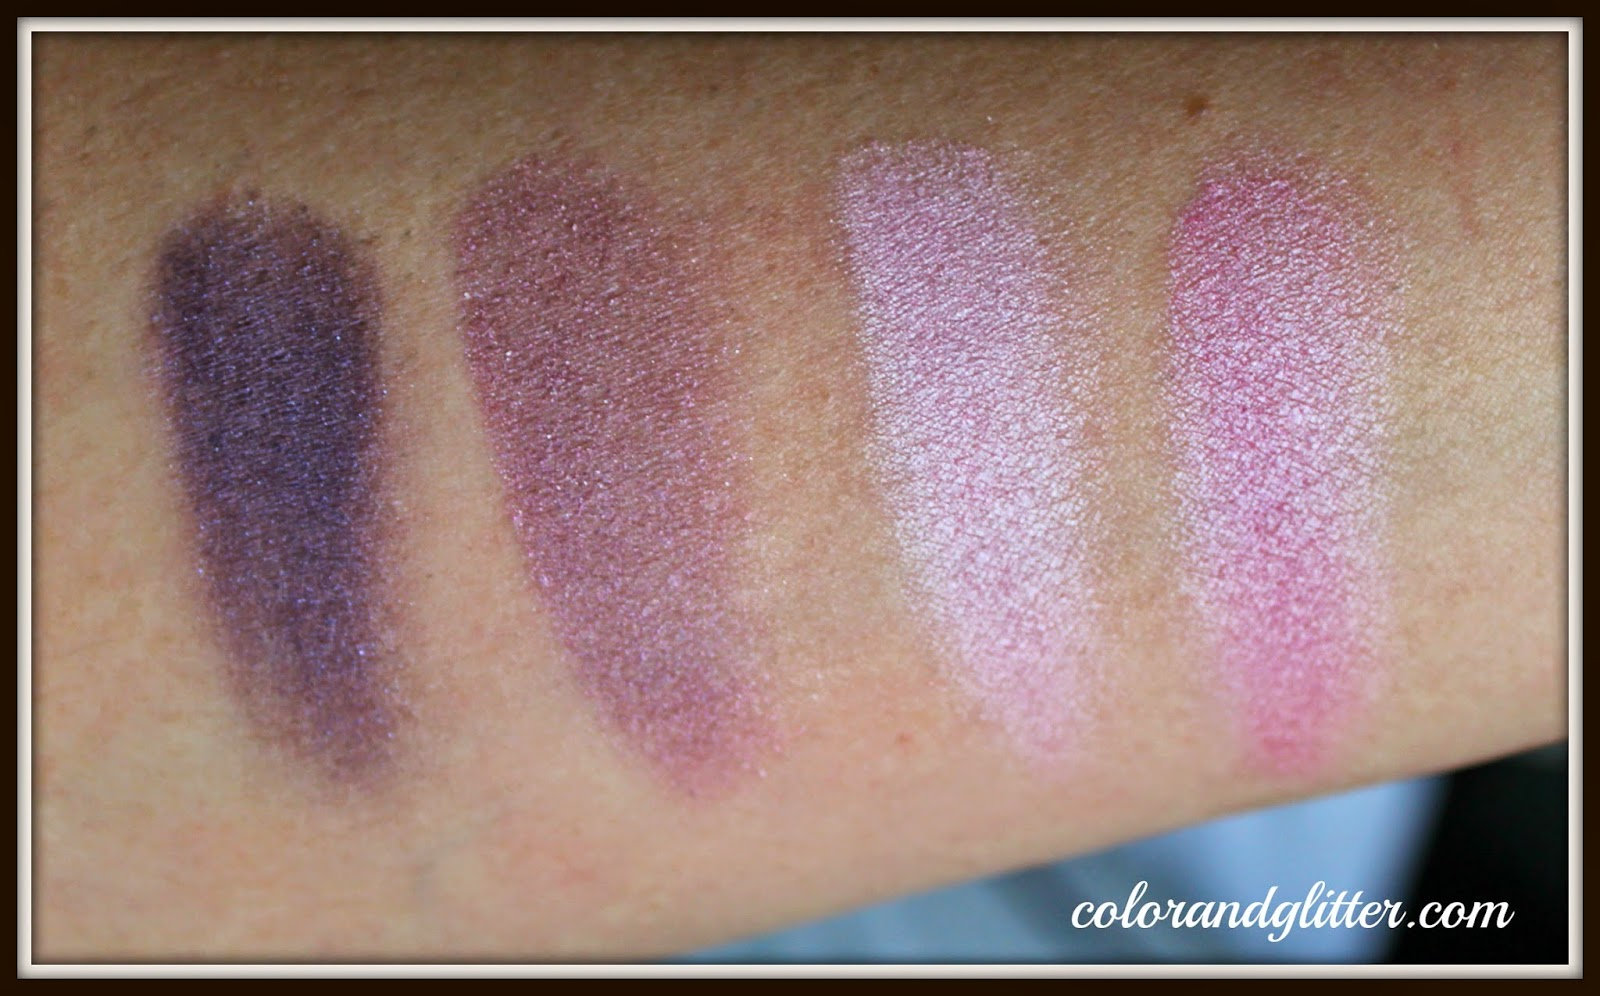 Covergirl Eye Enhancers 4-Kit Shadows in Blossoms || Review and Swatches